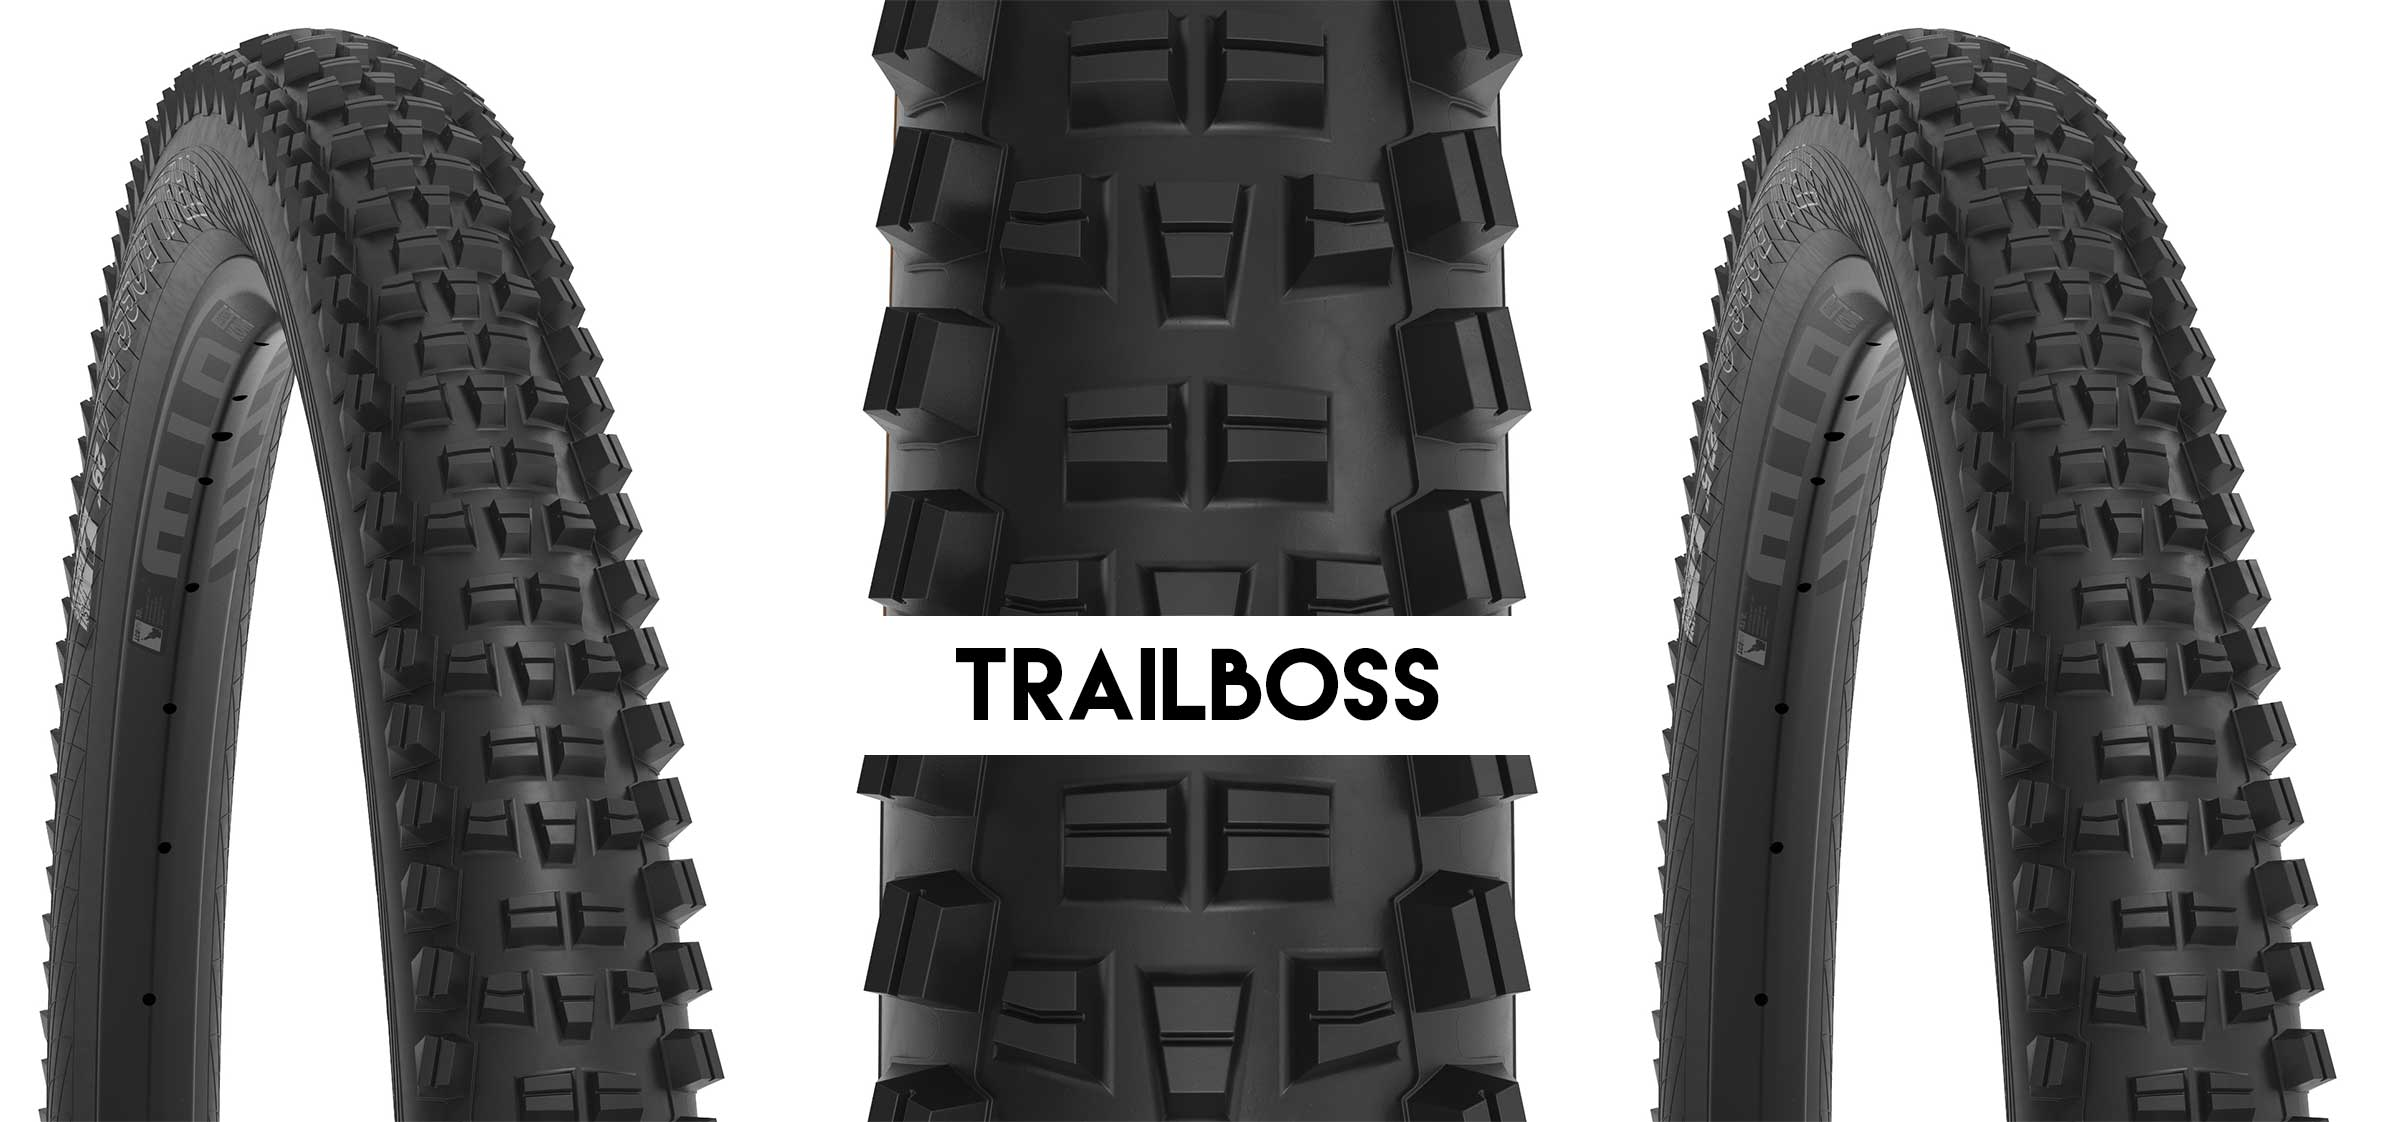 WTB Trailboss Tire